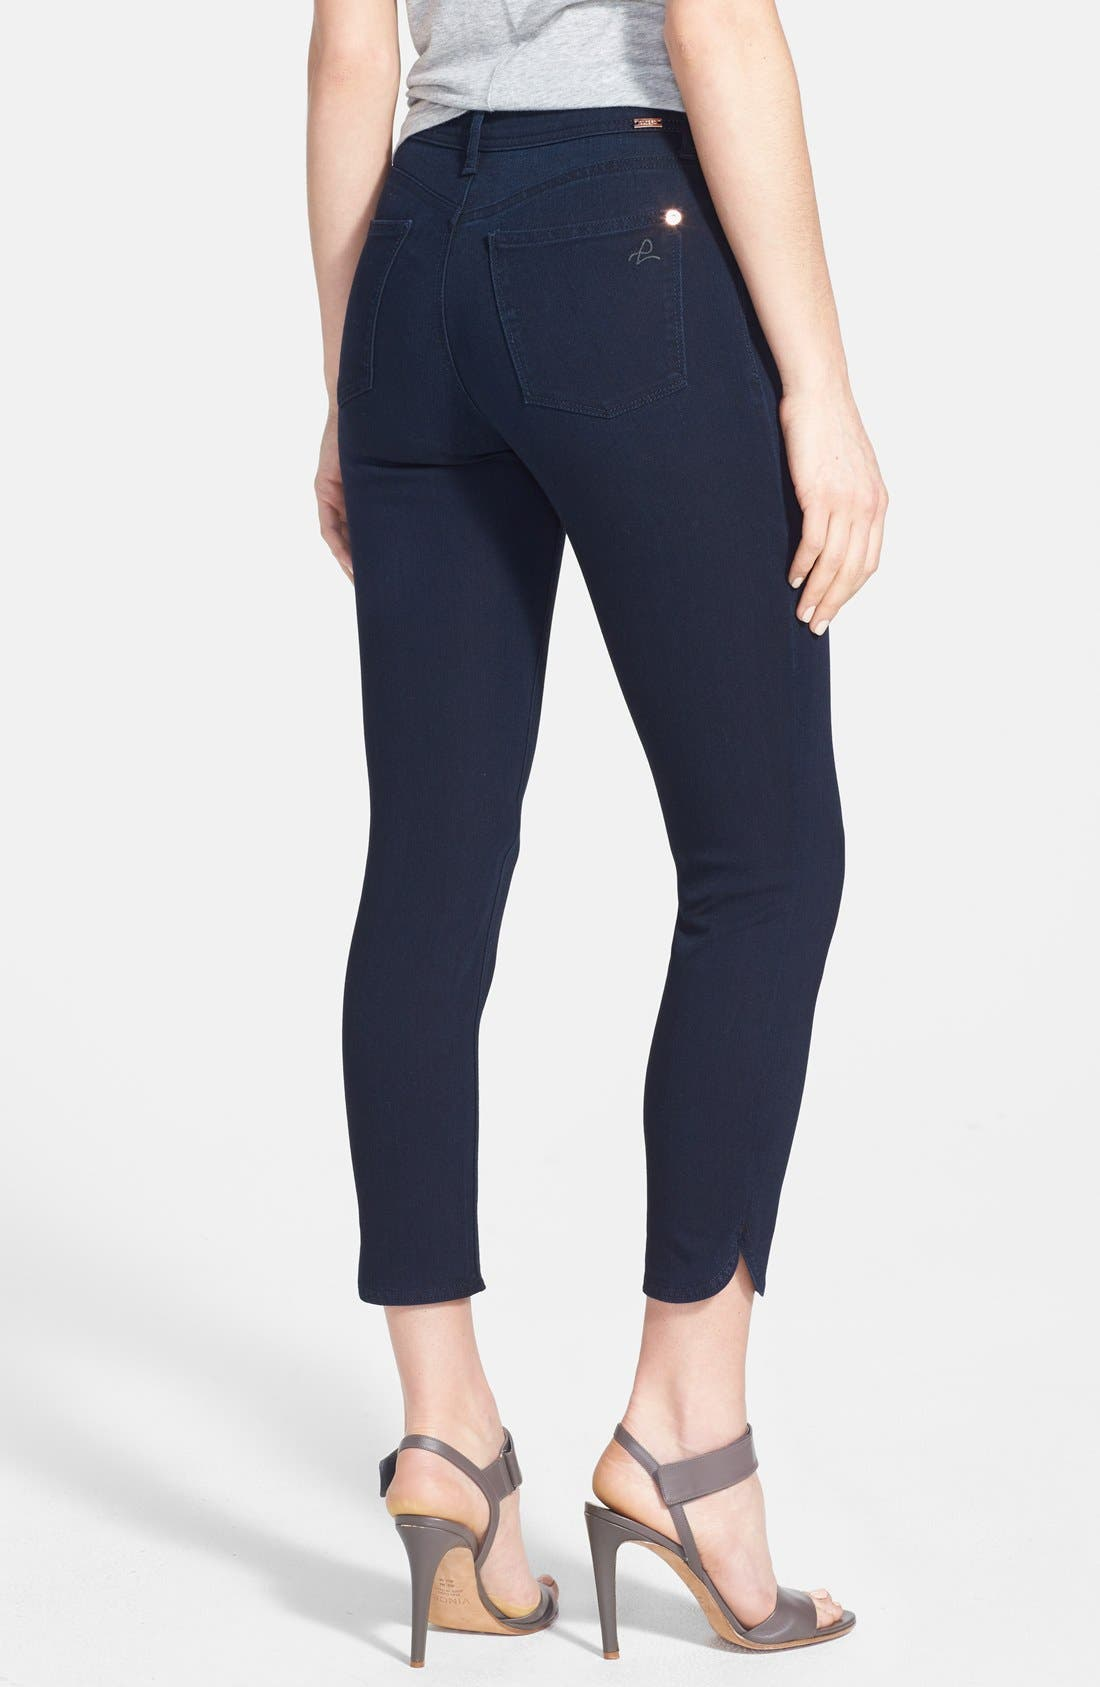 Alternate Image 2  - DL1961 'Bardot High Rise' Crop Jeans (Flat Iron)